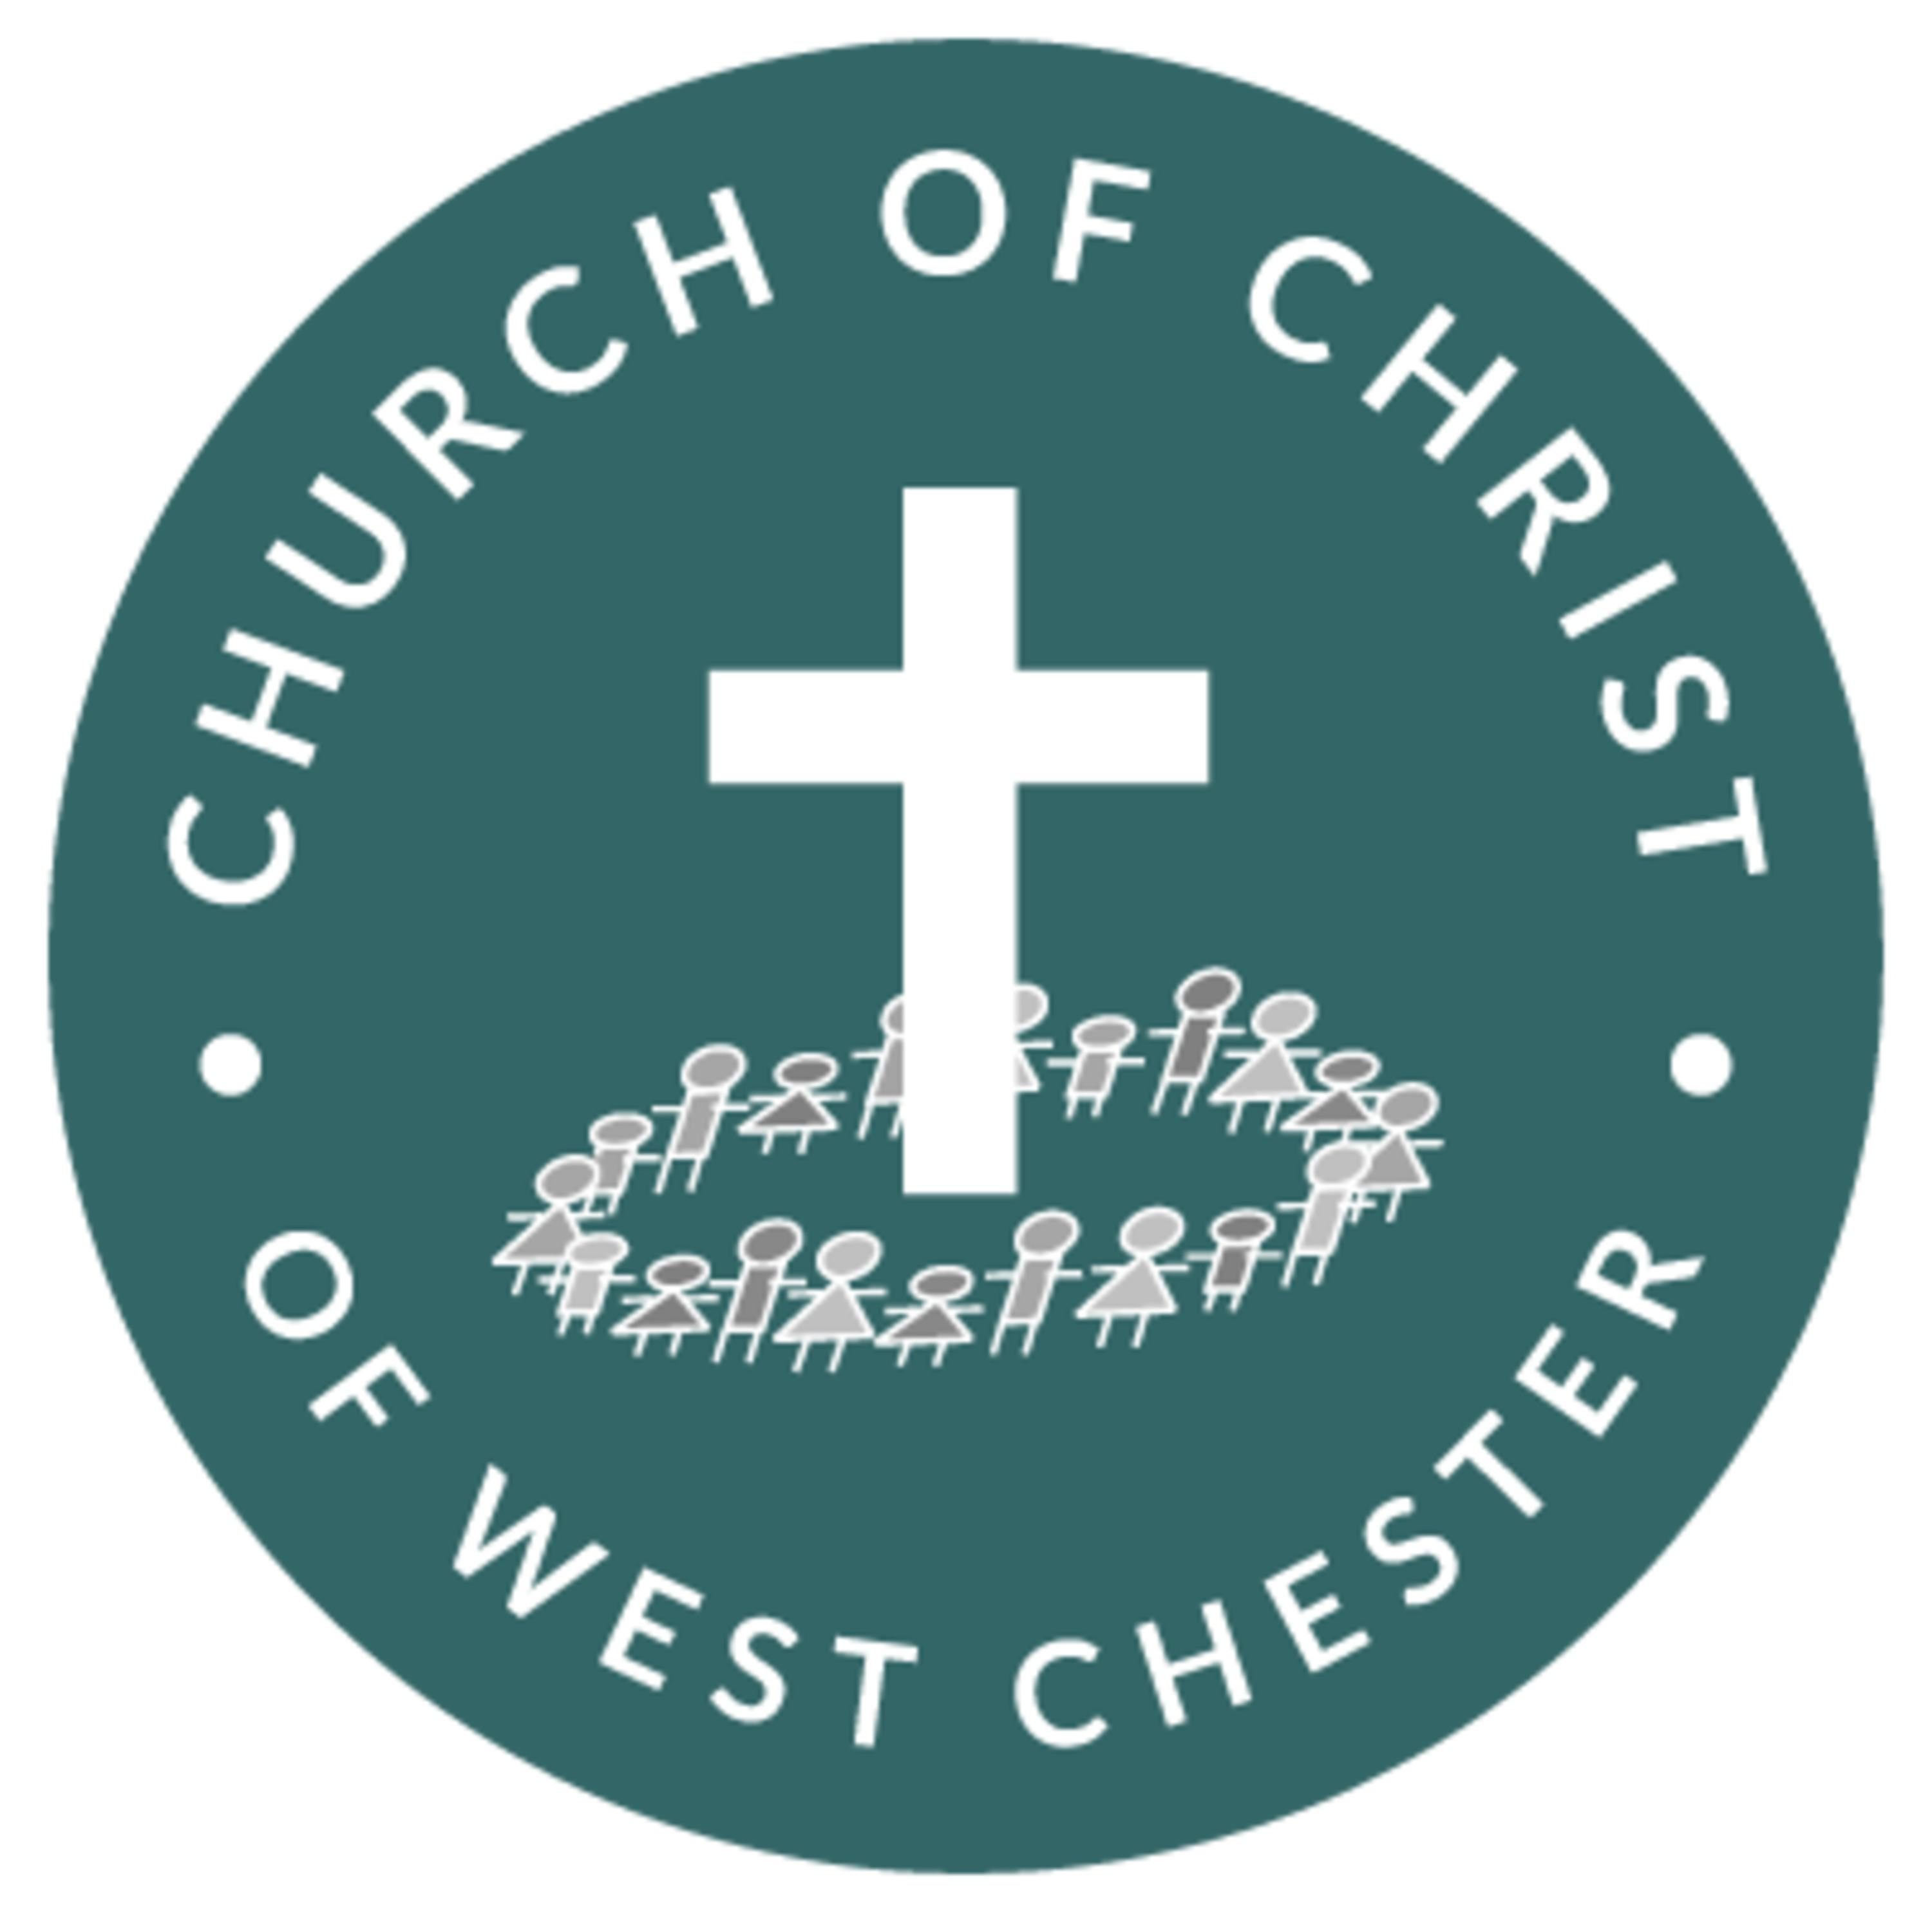 Church Of Christ Of West Chester A Podcast On Anchor